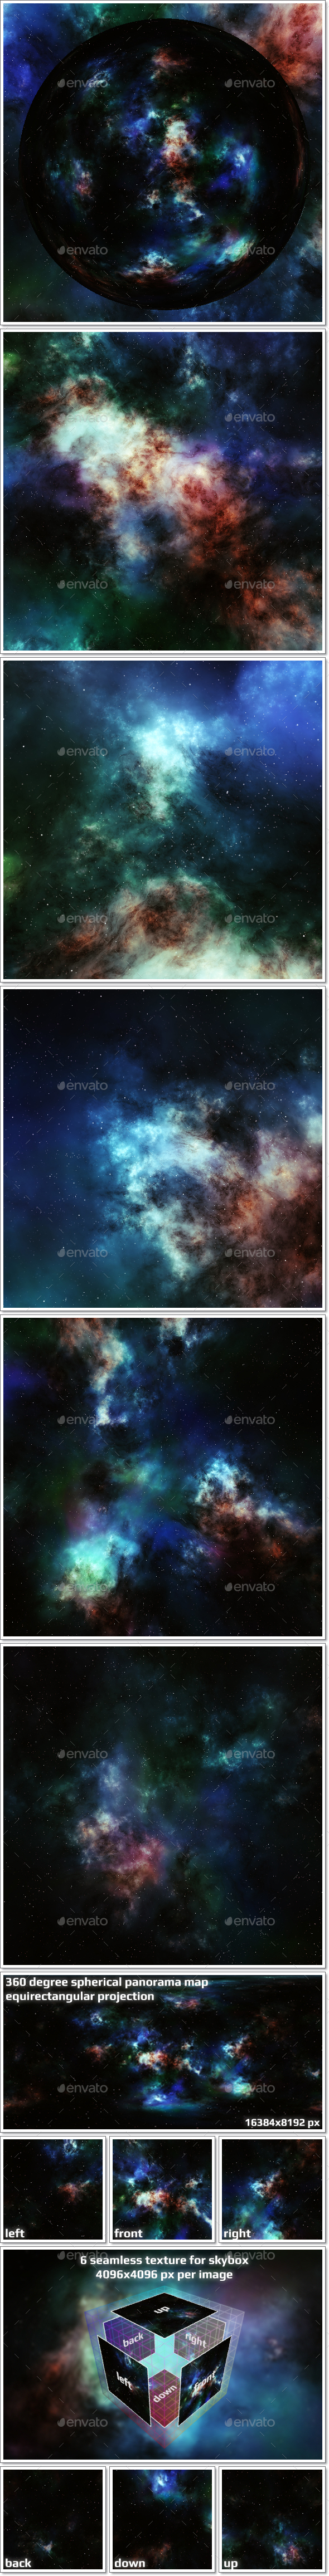 Nebula Space Environment HDRI Map 012 - 3DOcean Item for Sale